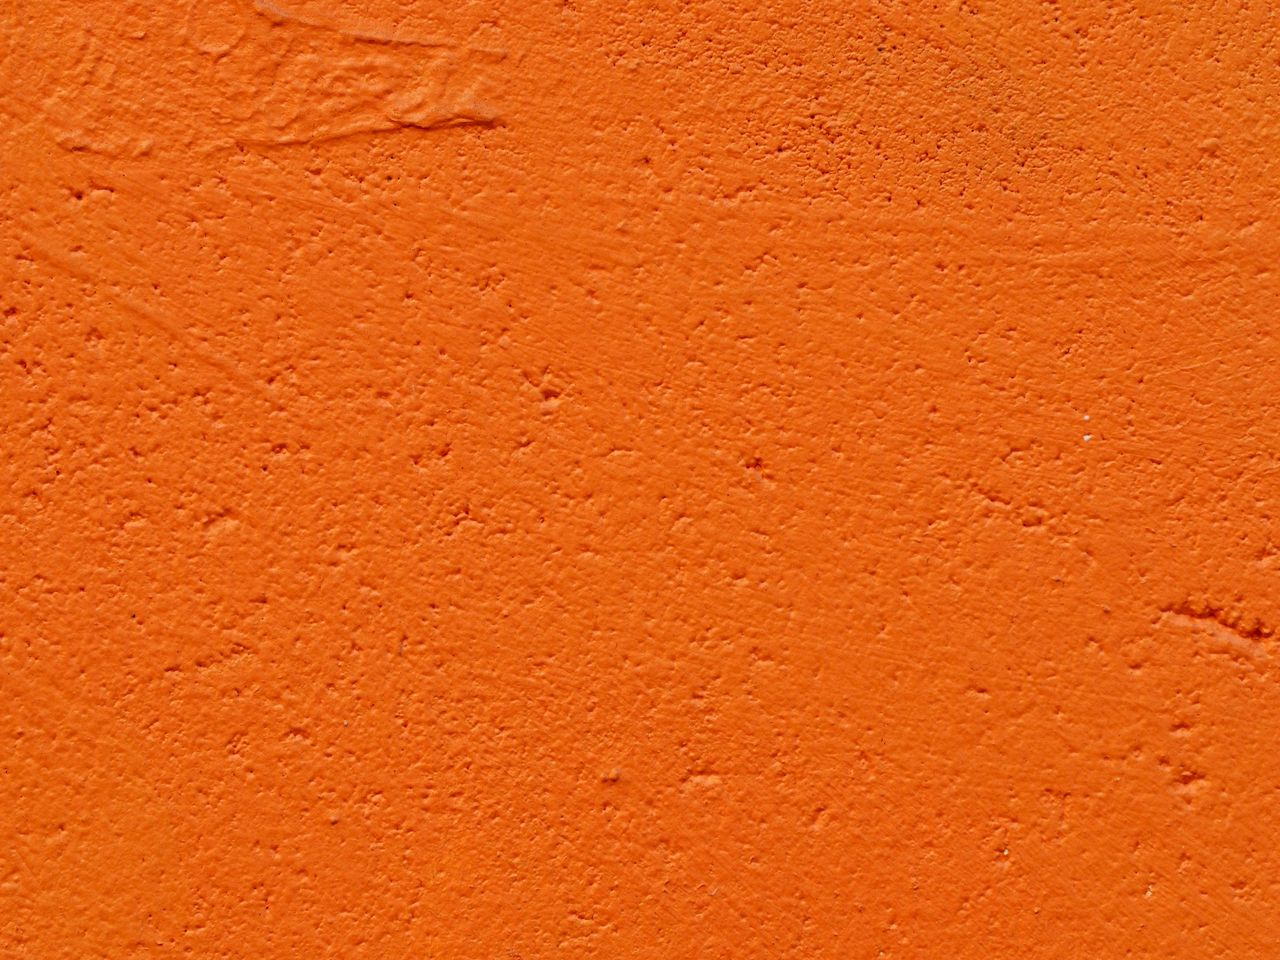 backgrounds, textured, full frame, orange color, close-up, no people, wall - building feature, built structure, architecture, pattern, textured effect, day, copy space, orange, rough, extreme close-up, macro, brown, outdoors